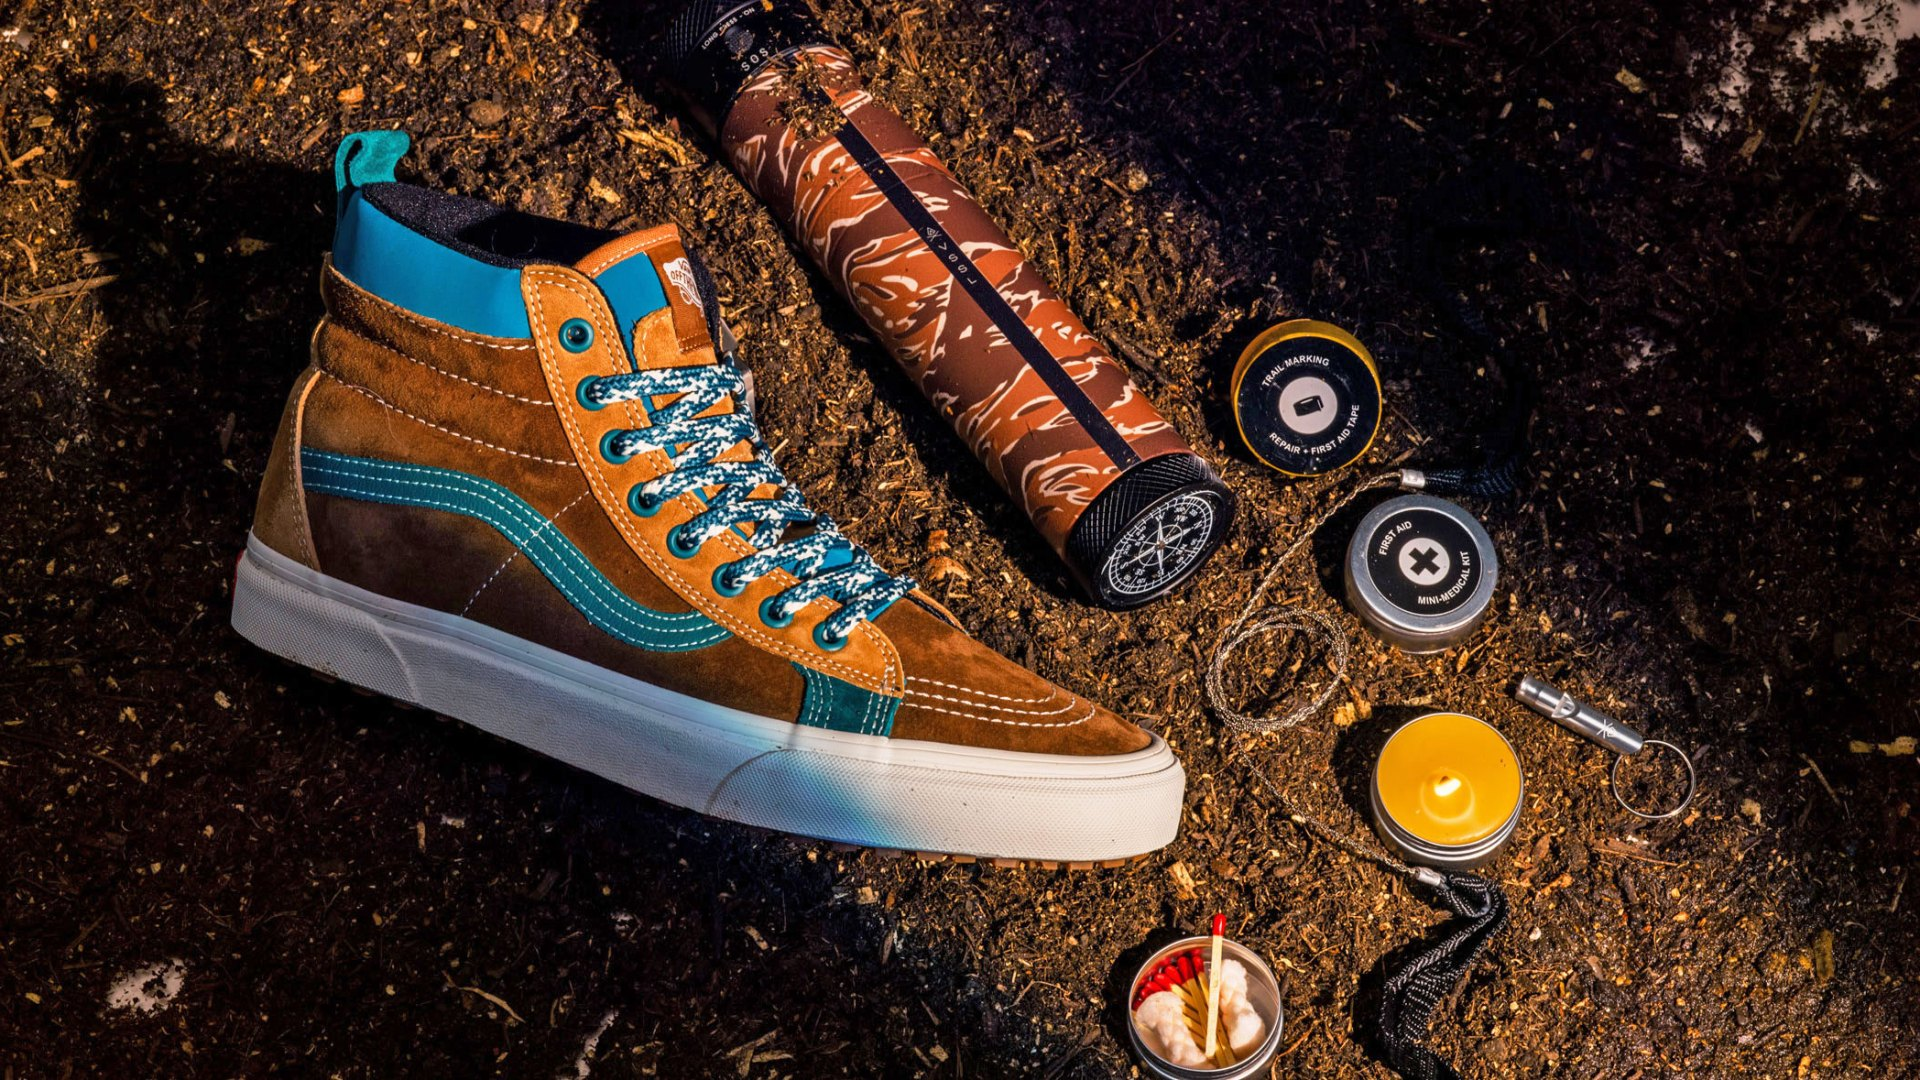 Gear News: 'Off the Wall' Meets Outdoors With Vault By Vans x VSSL Collaboration